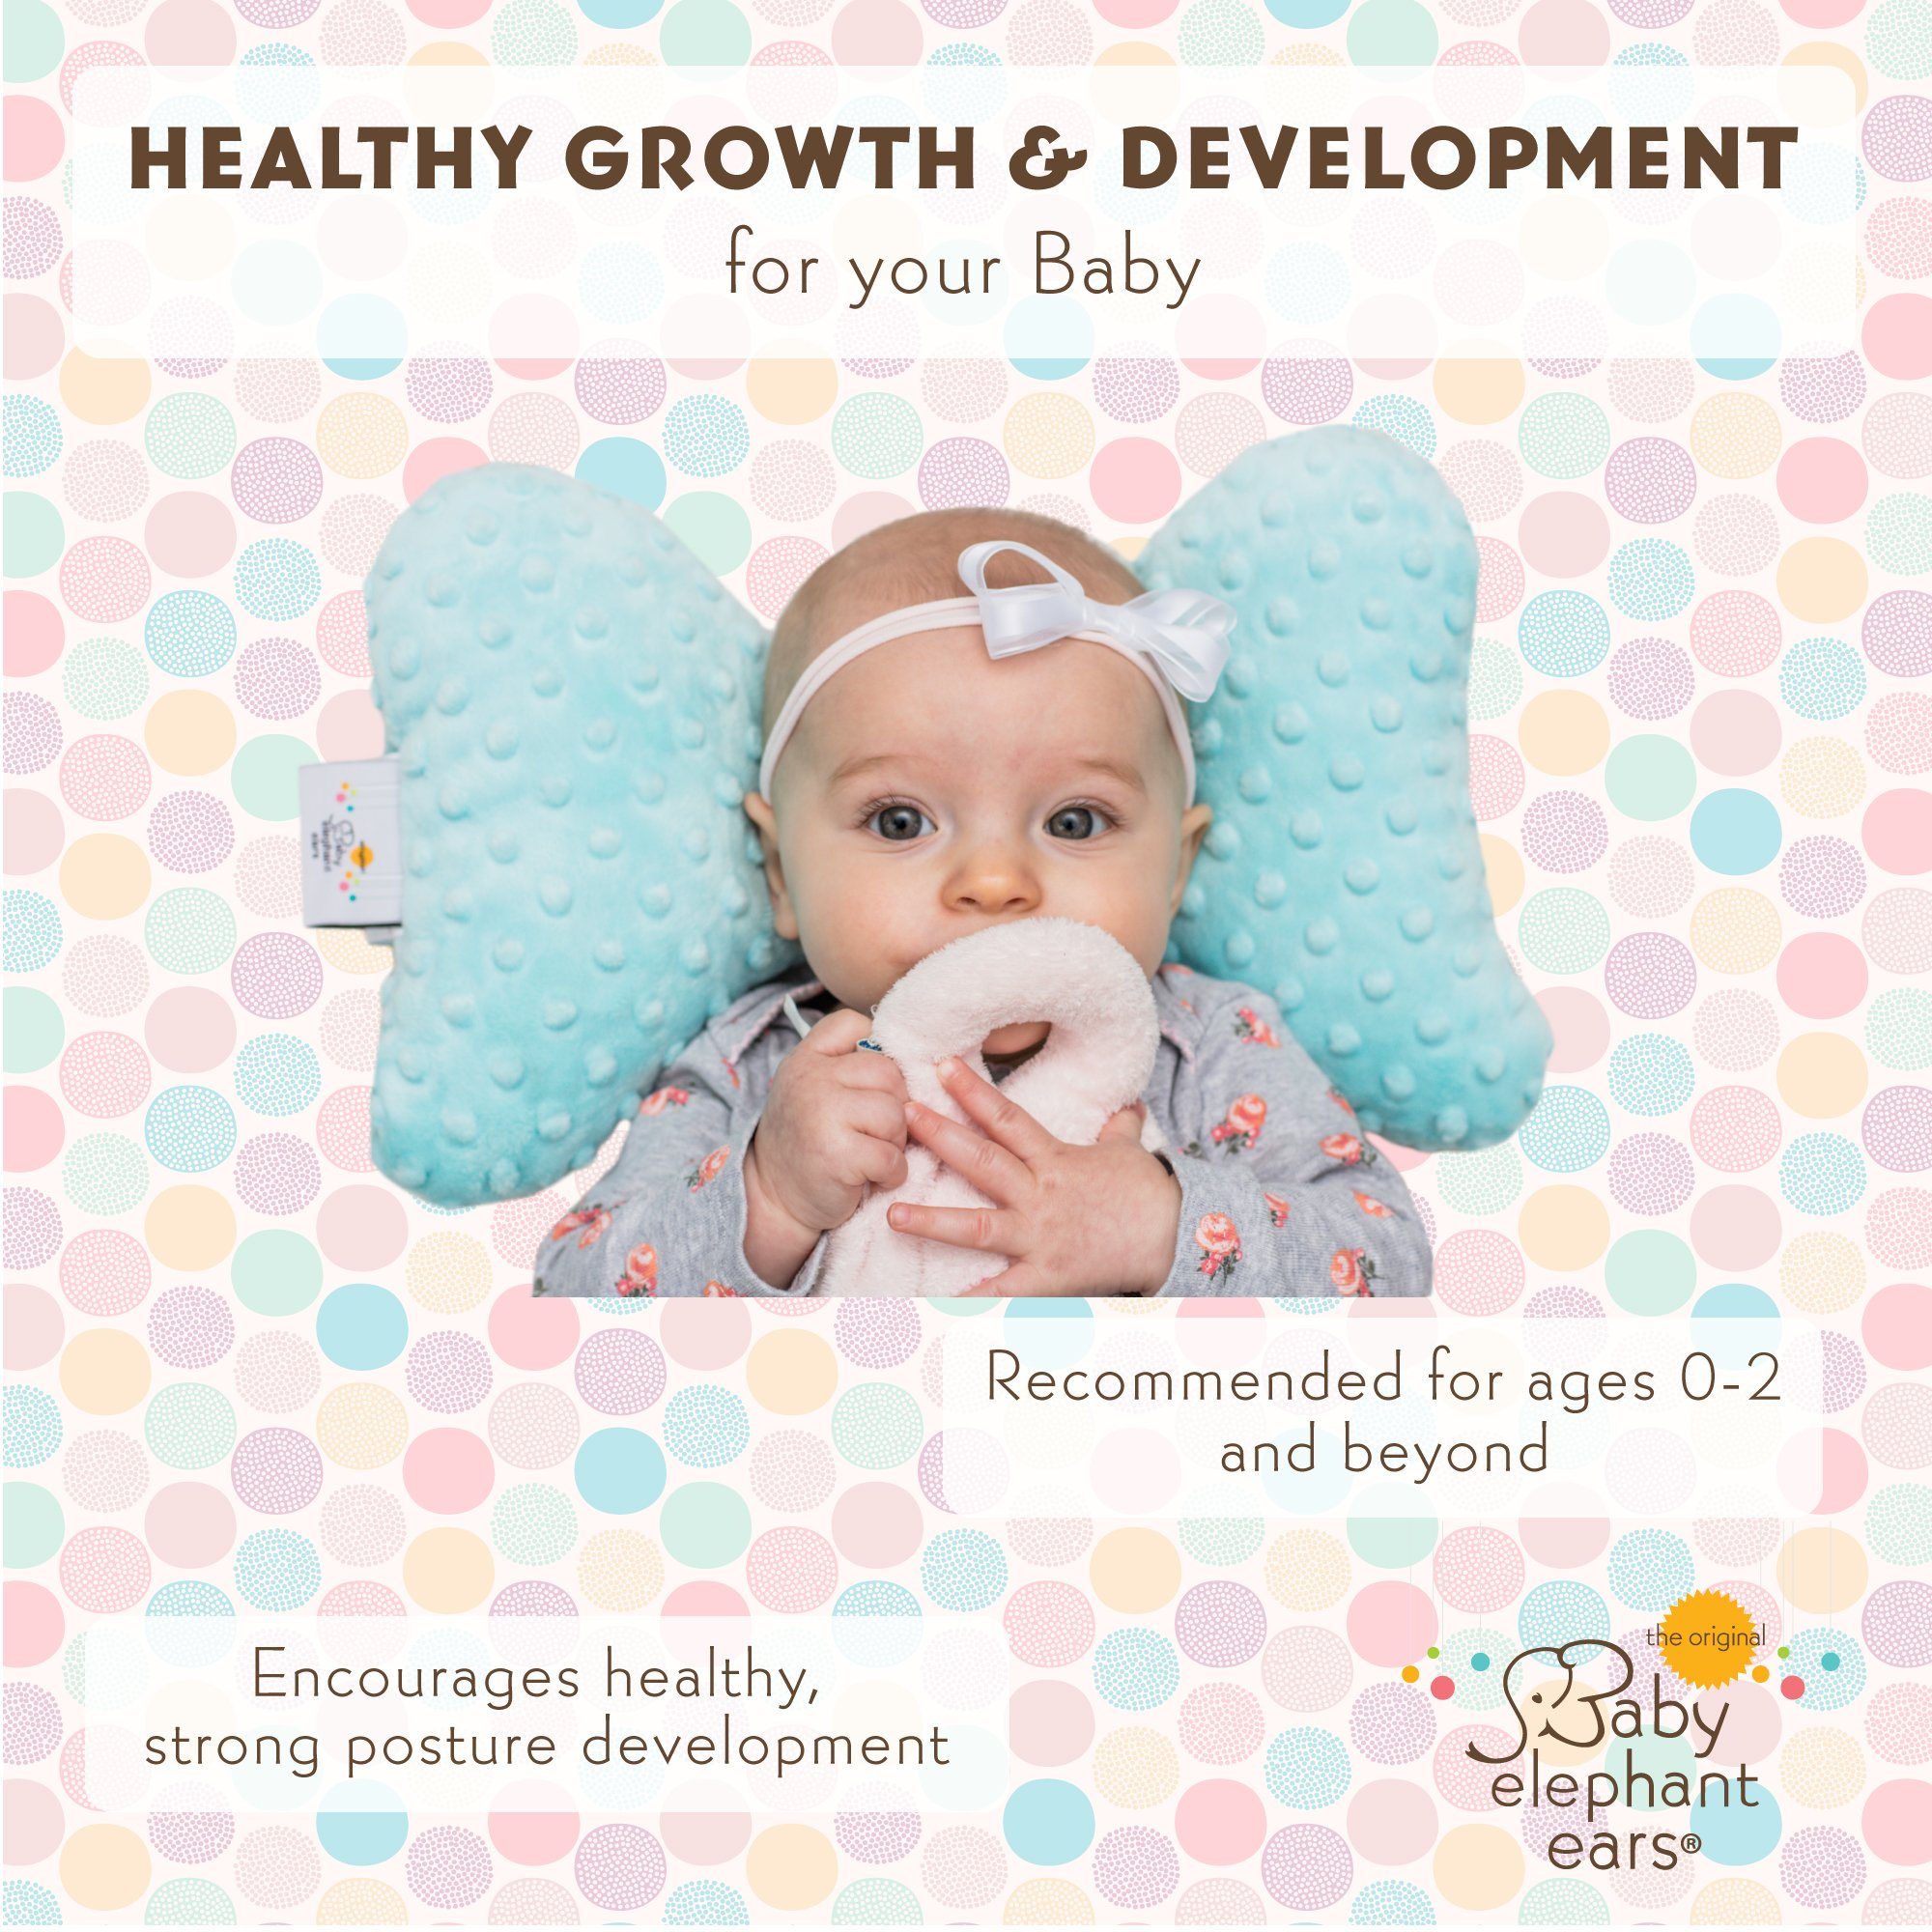 Original Baby Elephant Ears Head Support Pillow for Stroller, Swing, Bouncer, Changing Table, Car Seat, etc. (Woodland Wonder) by Original Baby Elephant Ears (Image #7)